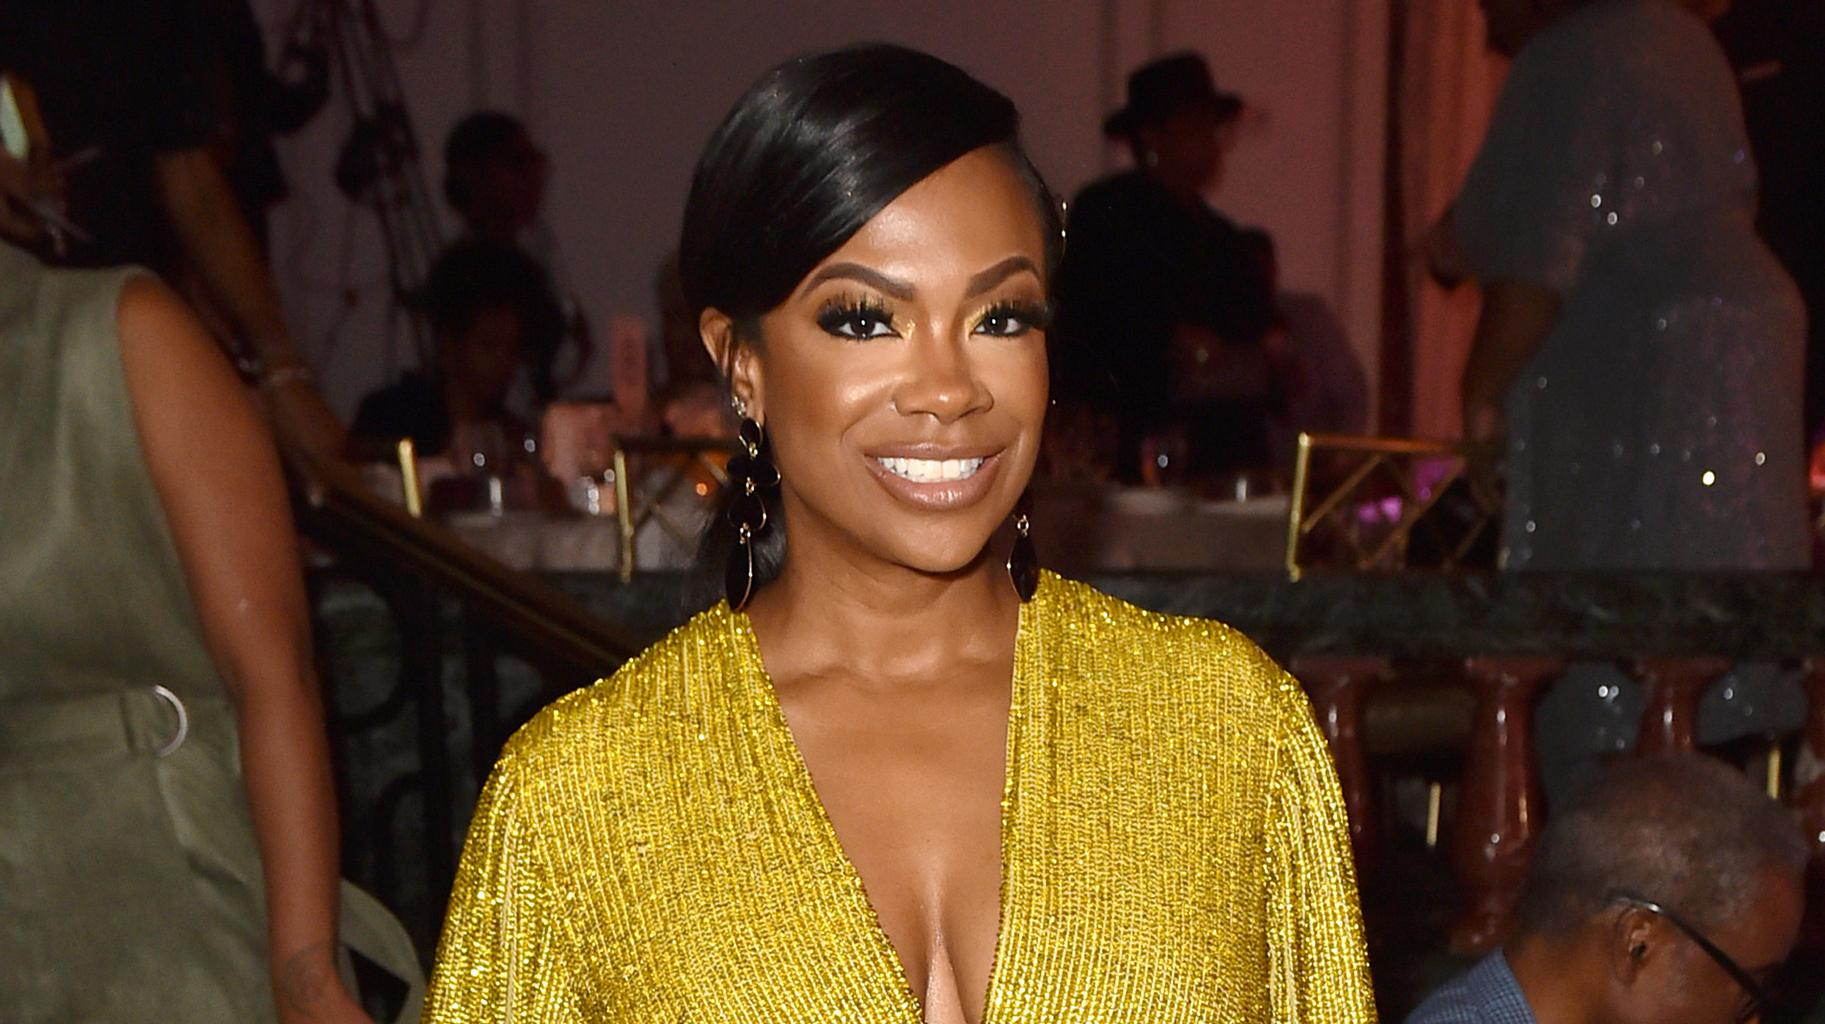 Kandi Burruss' Fans Congratulate Her For The Performance In 'The Chi'